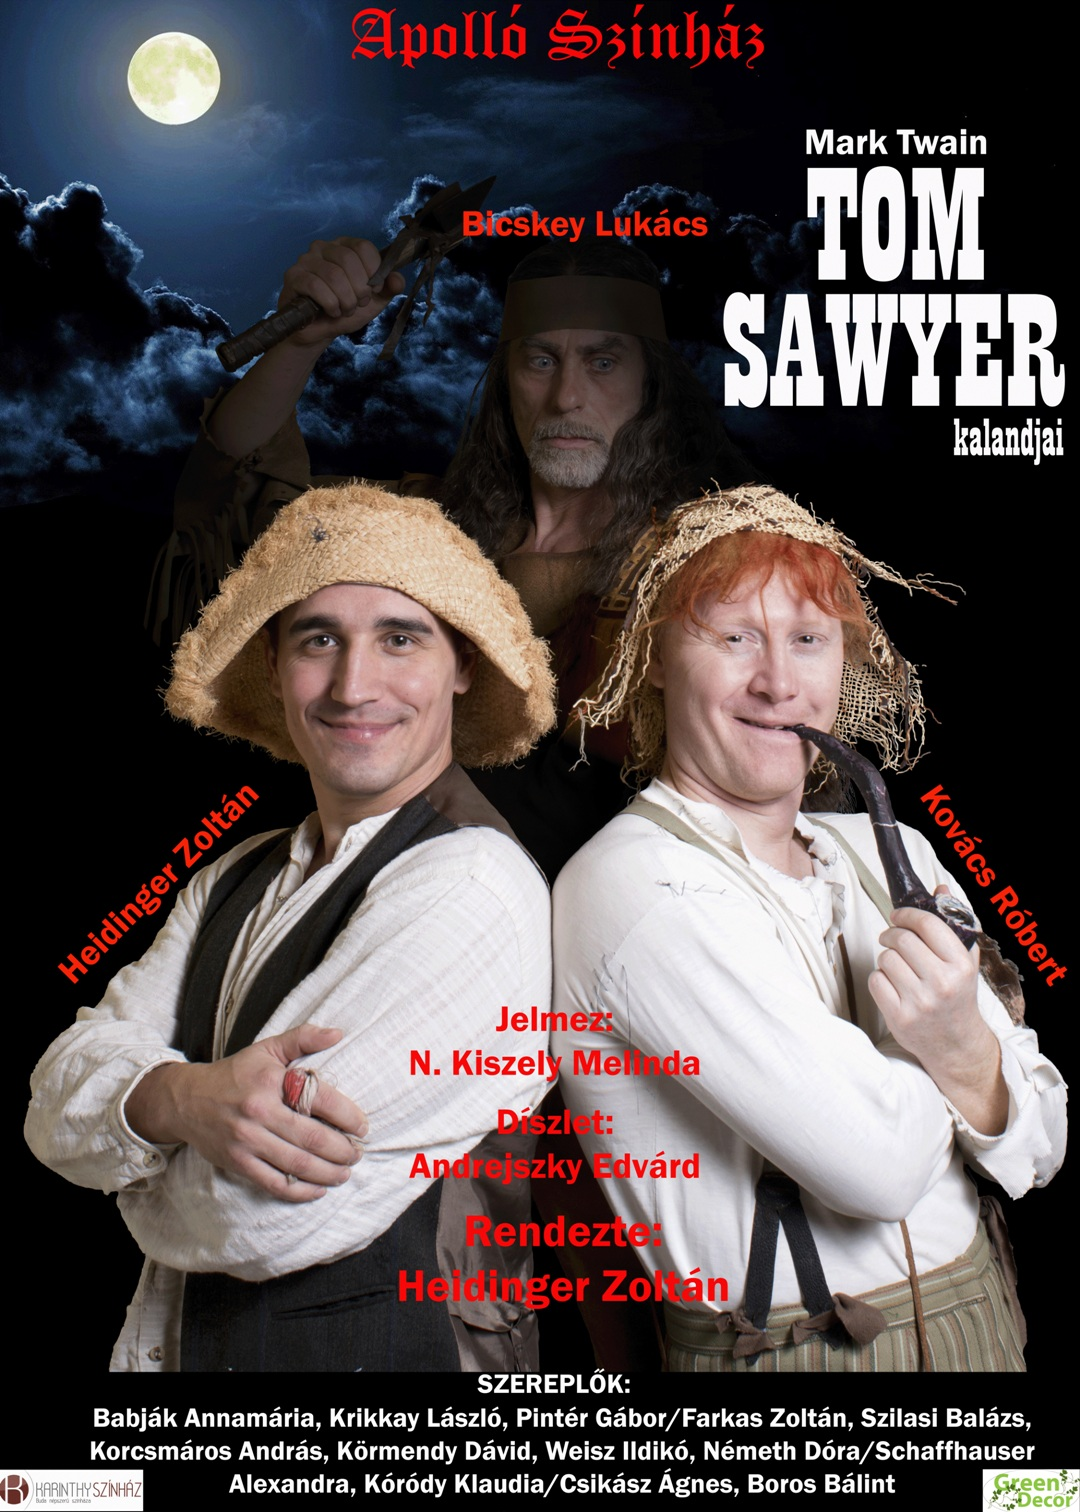 You are browsing images from the article: Mark Twain: Tom Sawyer